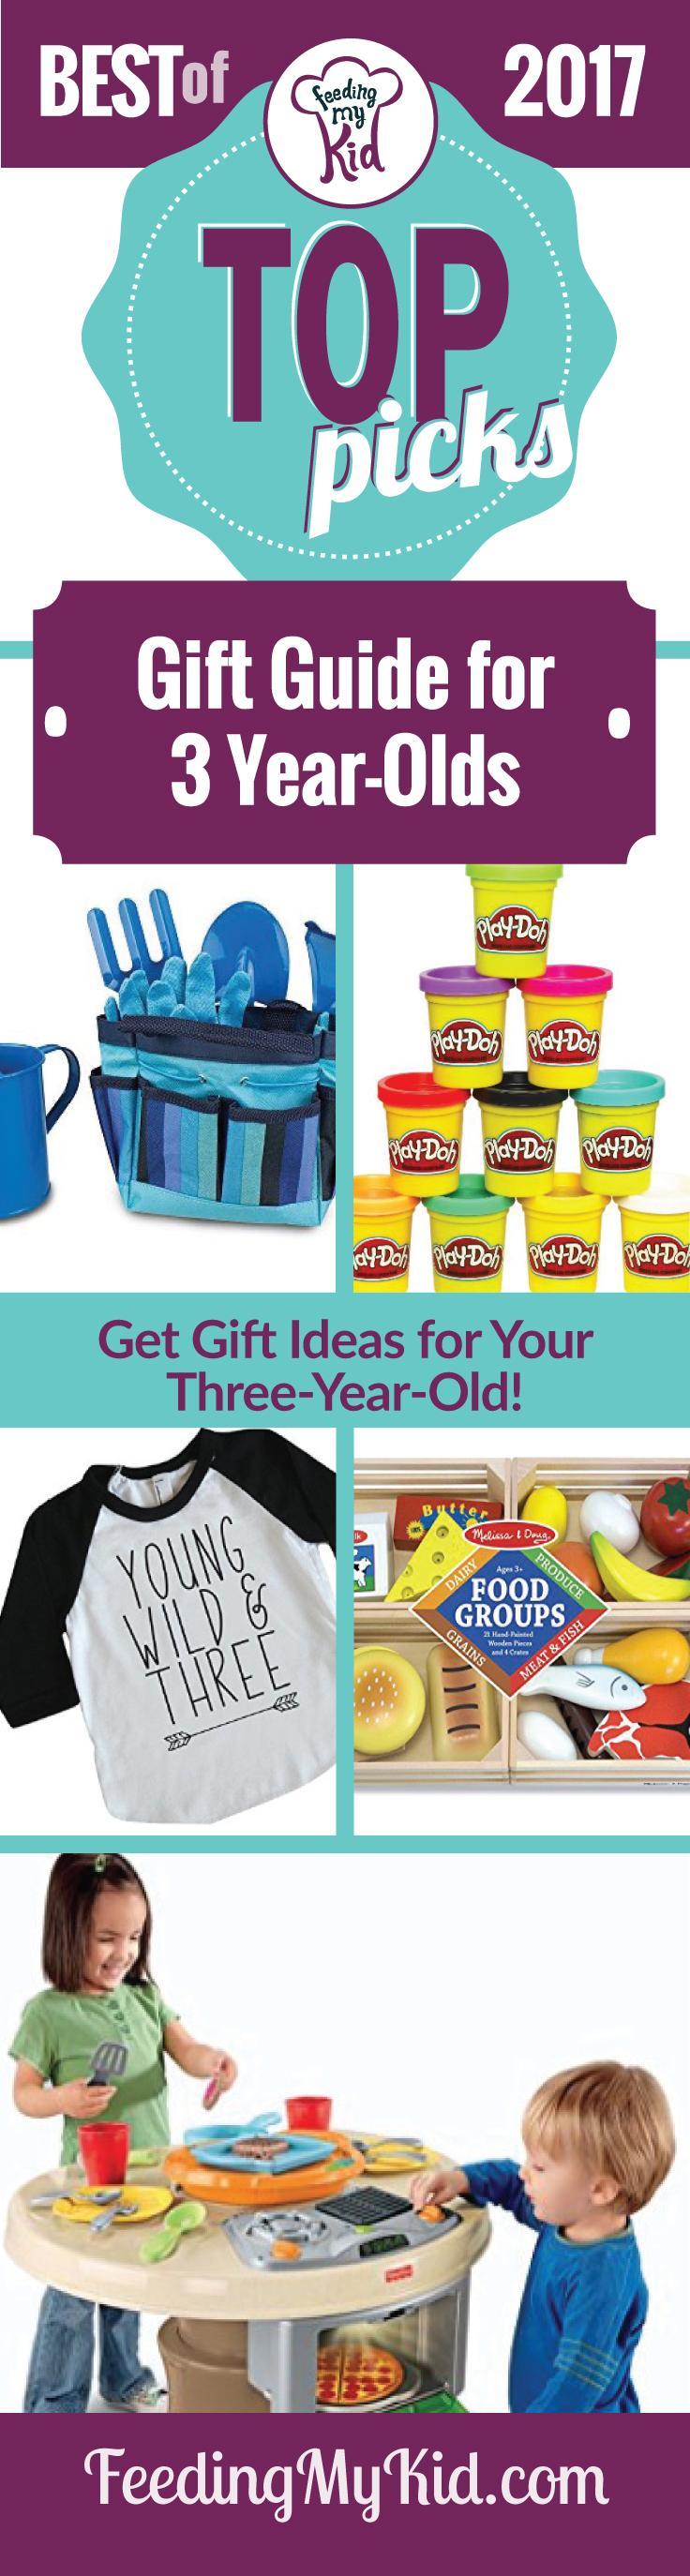 Gifts for 3 Year Olds Your Kids Will Love These Gifts